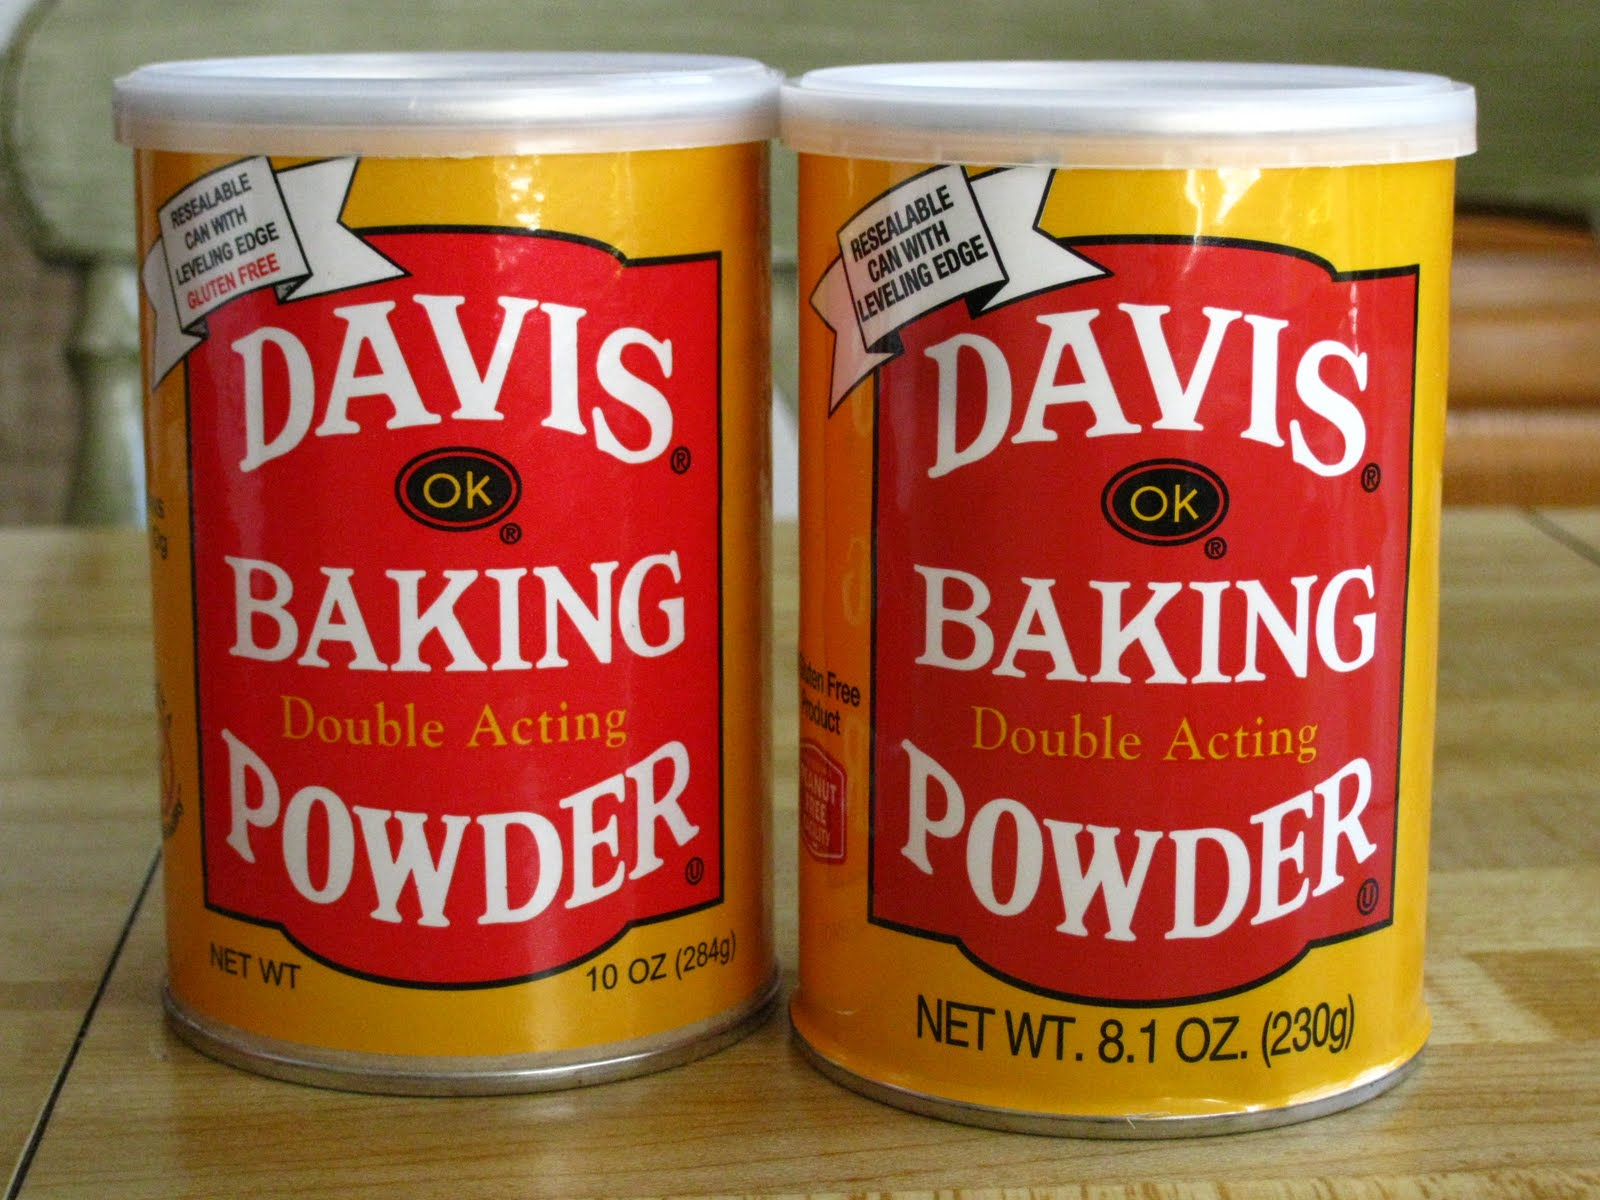 Baking powder images